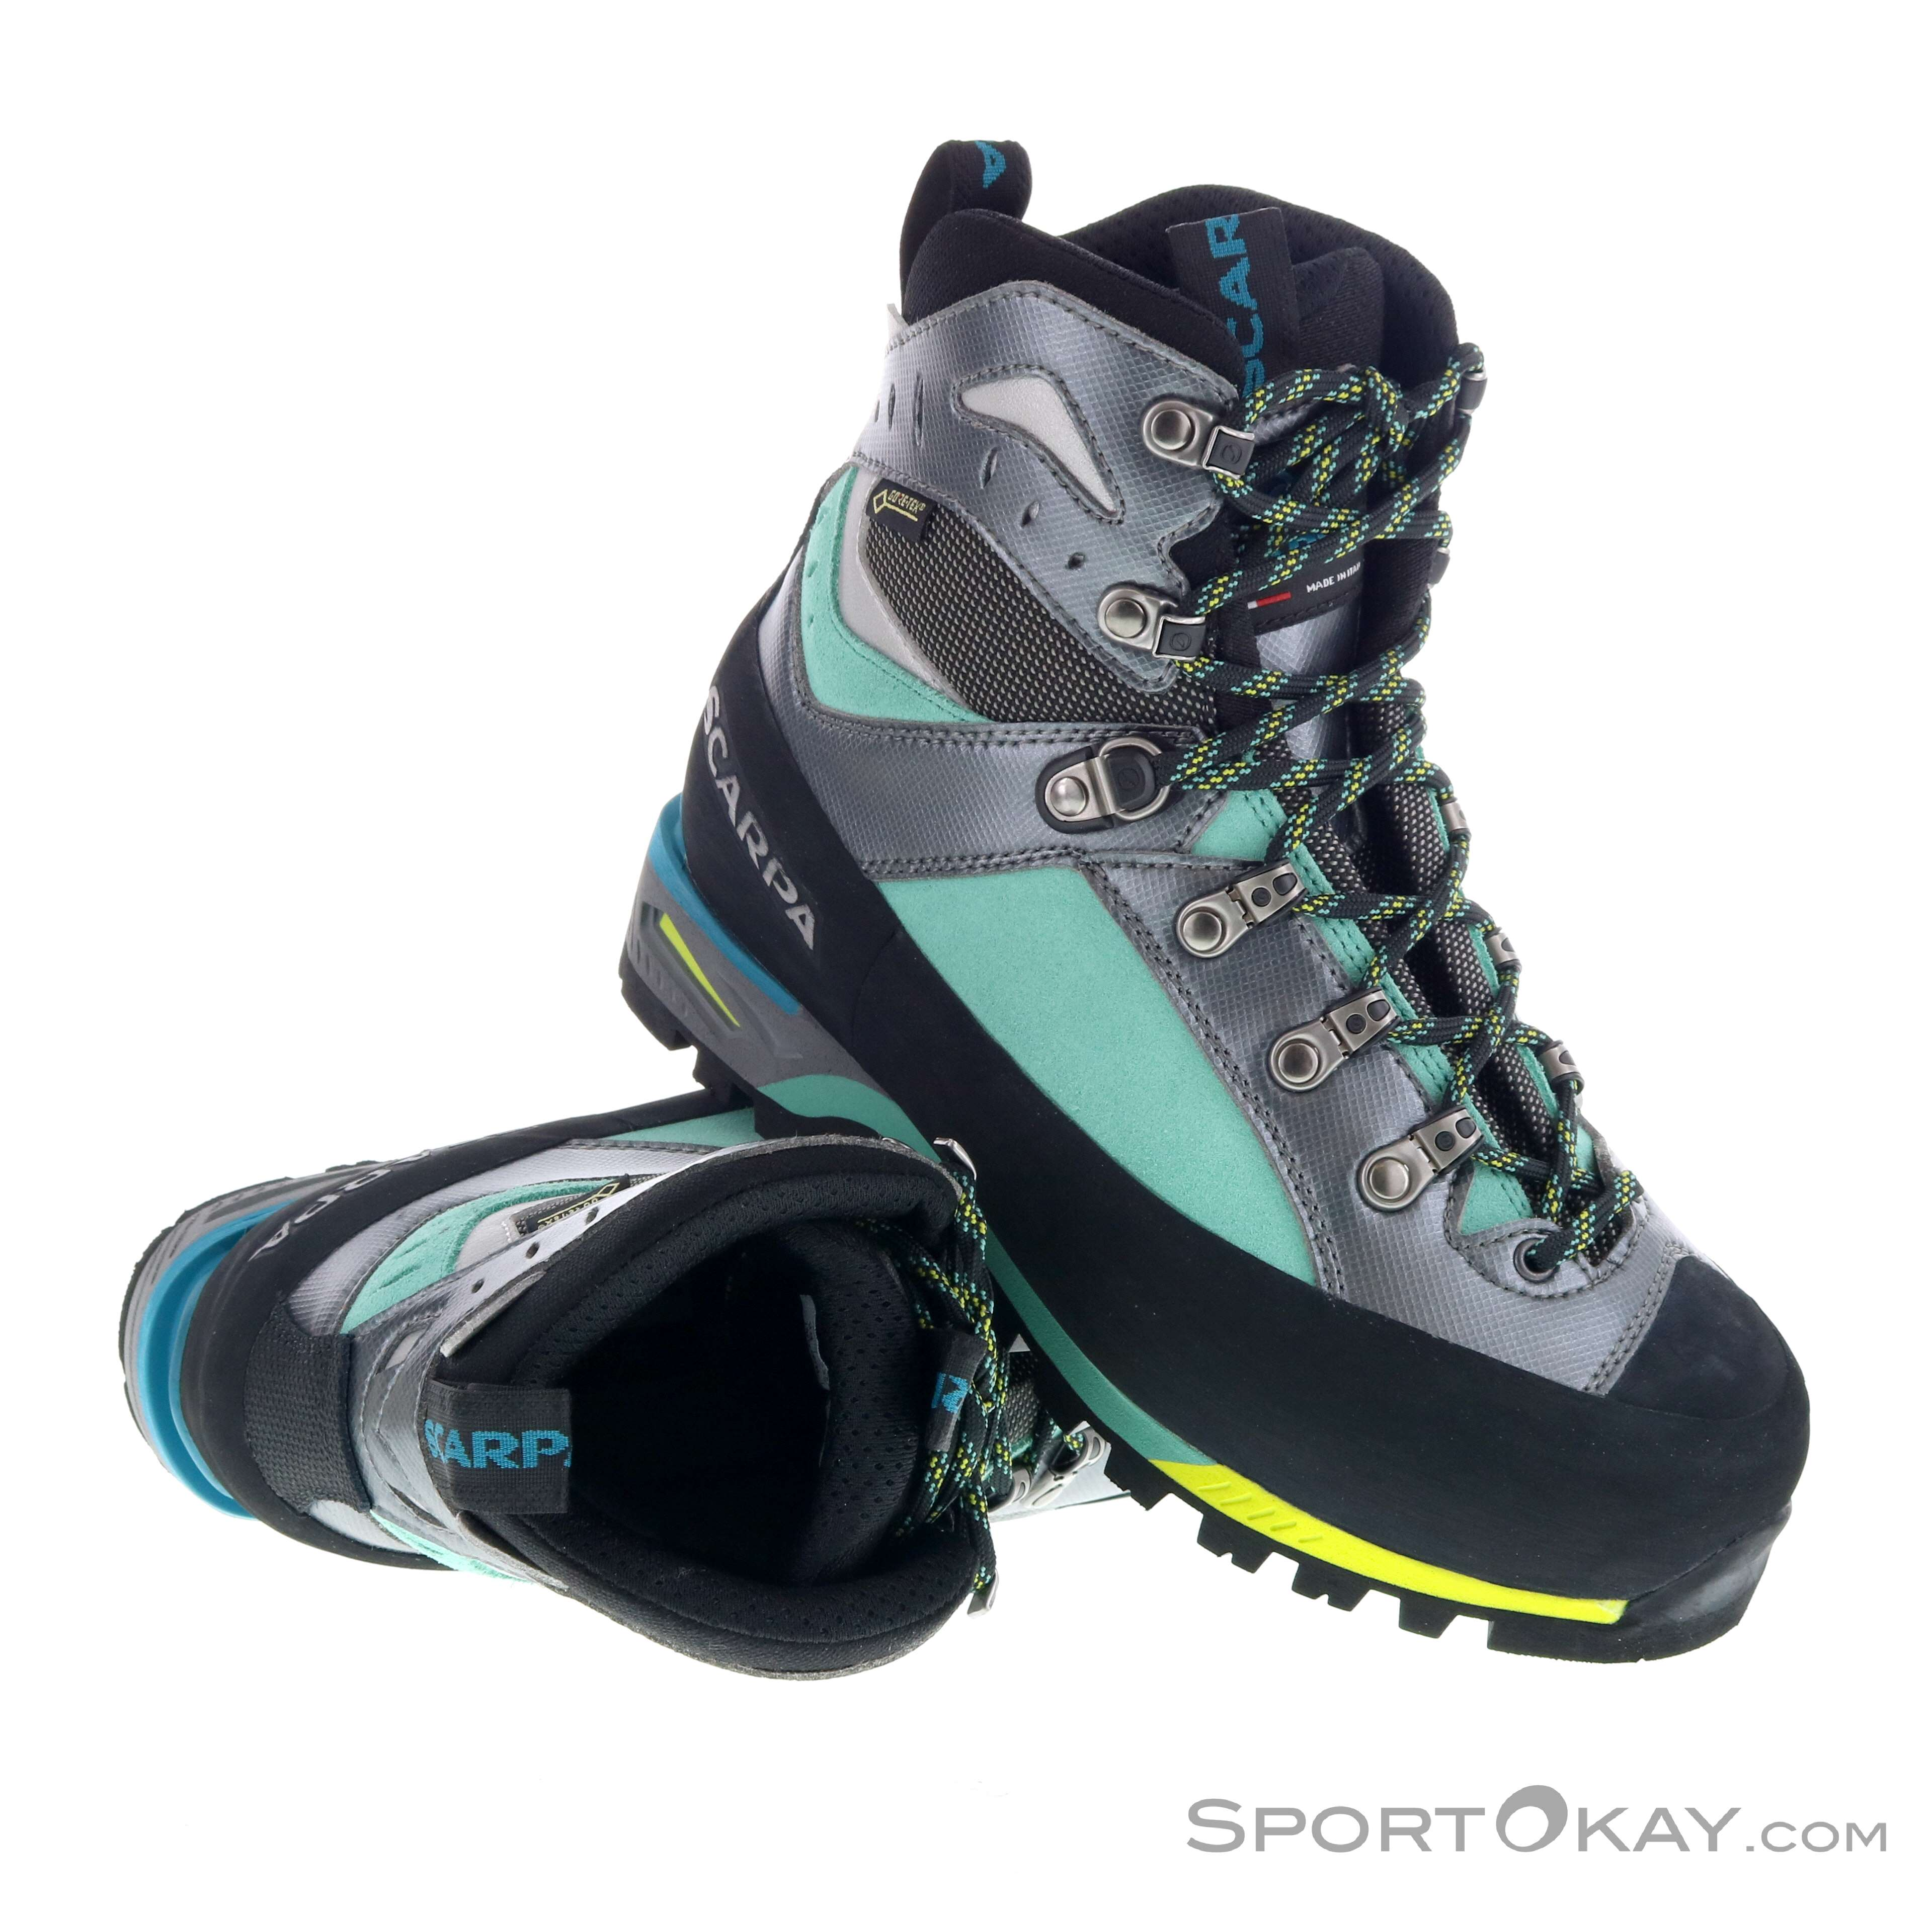 Scarpa Scarpa Triolet GTX Womens Mountaineering Boots Gore Tex